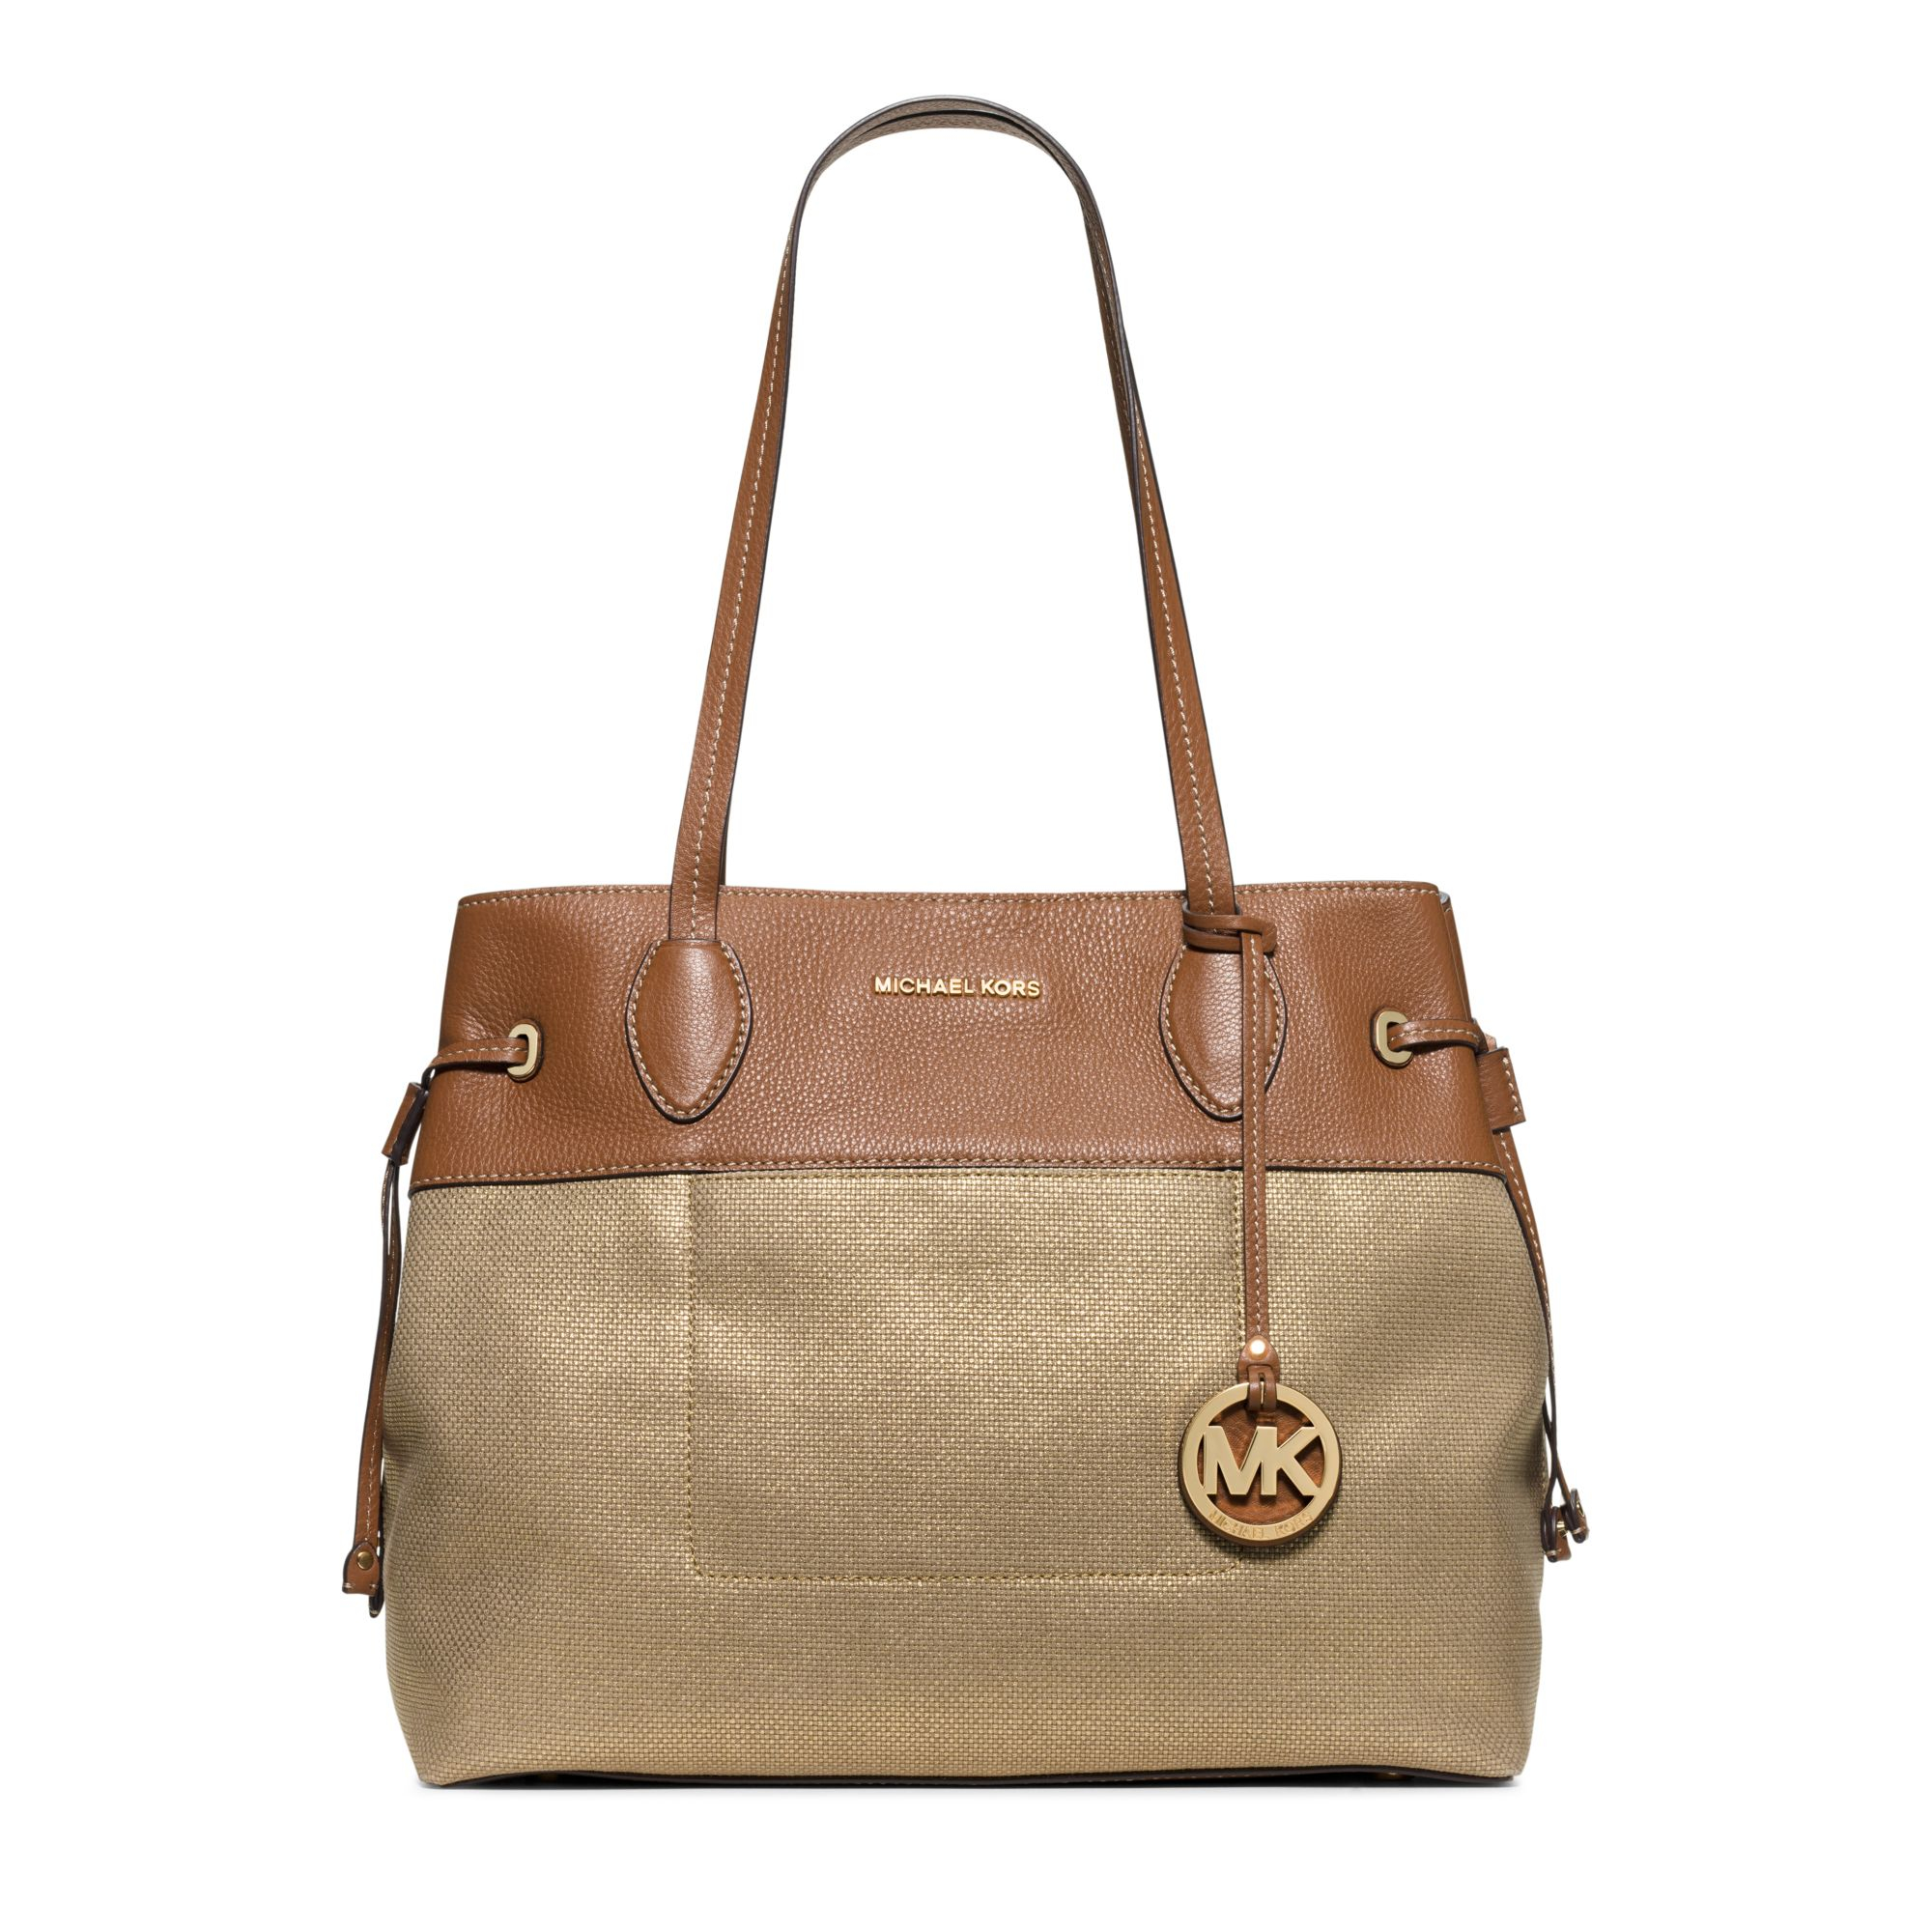 Bolsa Michael Kors Marina : Michael kors marina large canvas tote in metallic lyst